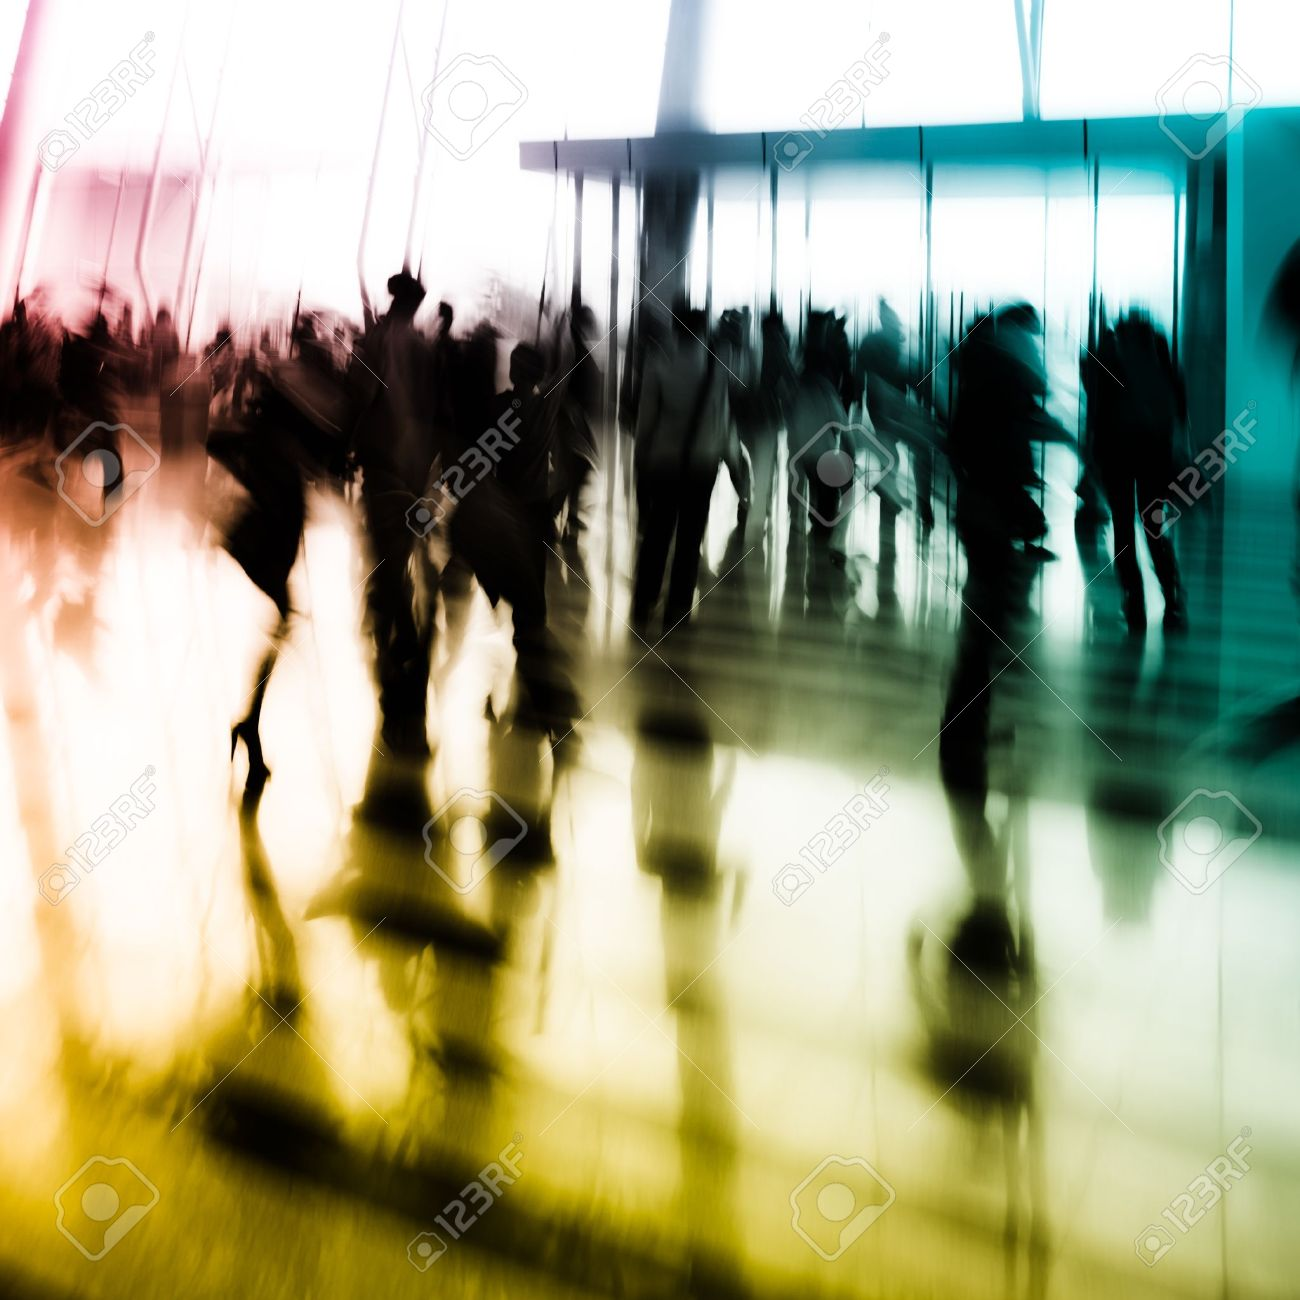 city business people abstract background blur motion Stock Photo - 11728242